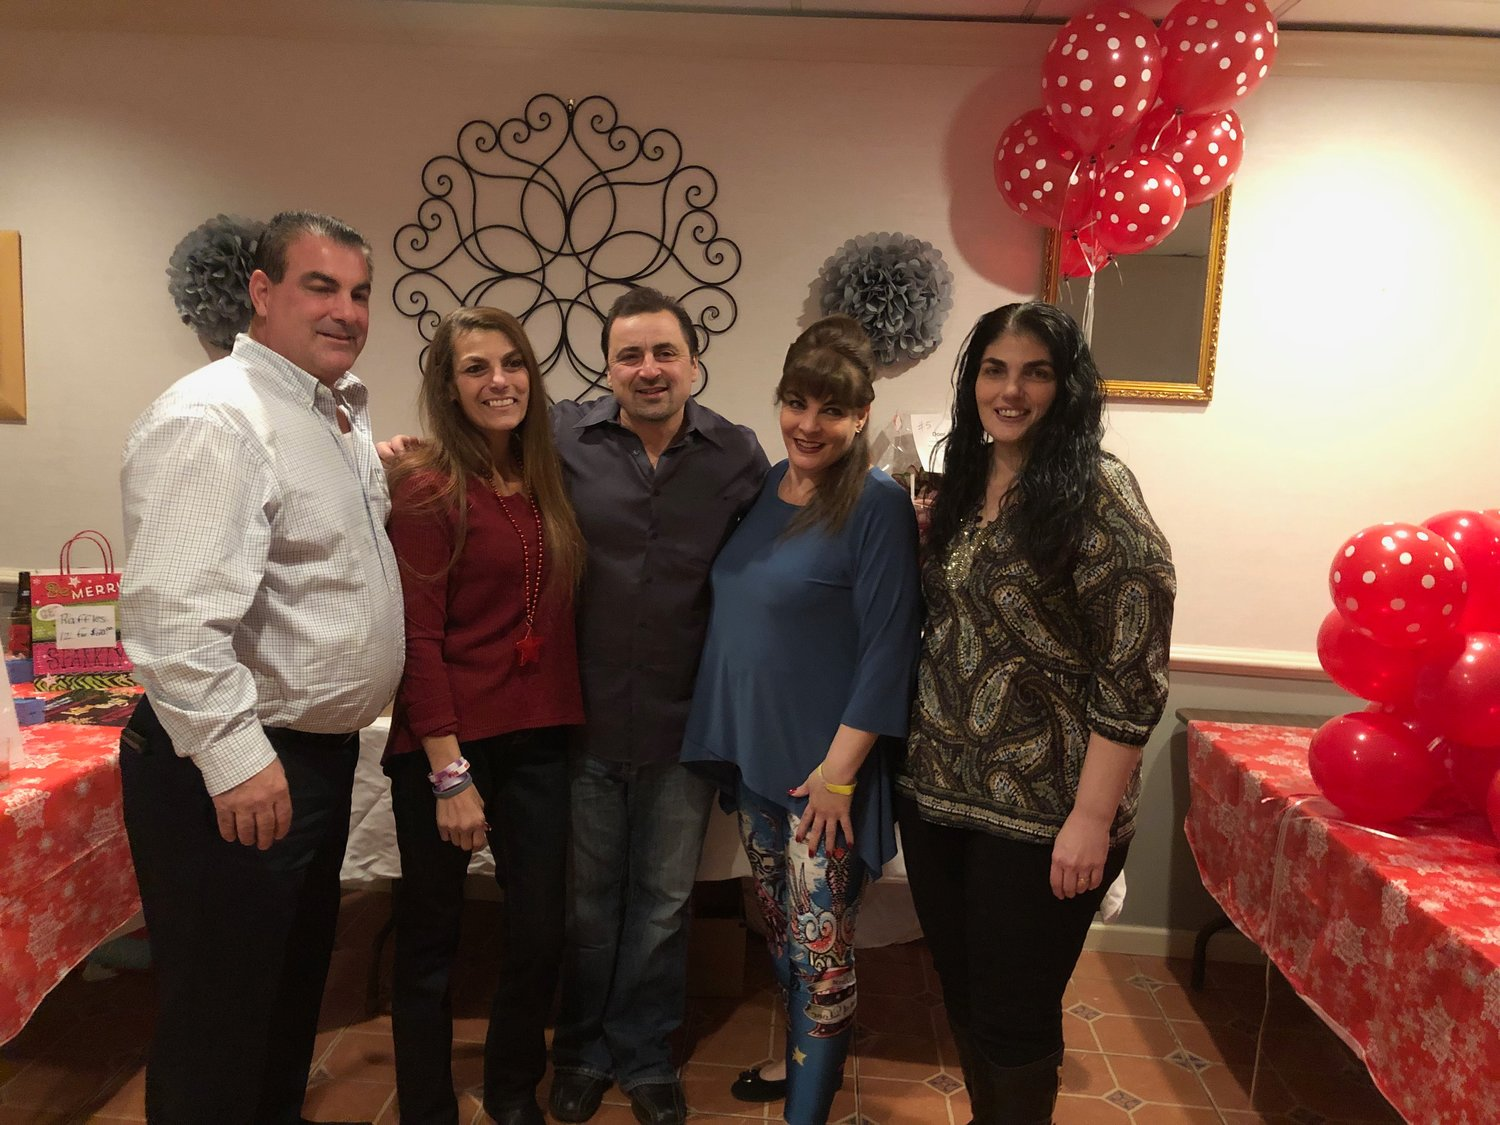 Domenick Stanco, left, Donna Stanco, Angelo Stanco, Mary Stanco and Angelina Stone-Stanco are a very close-knit family.